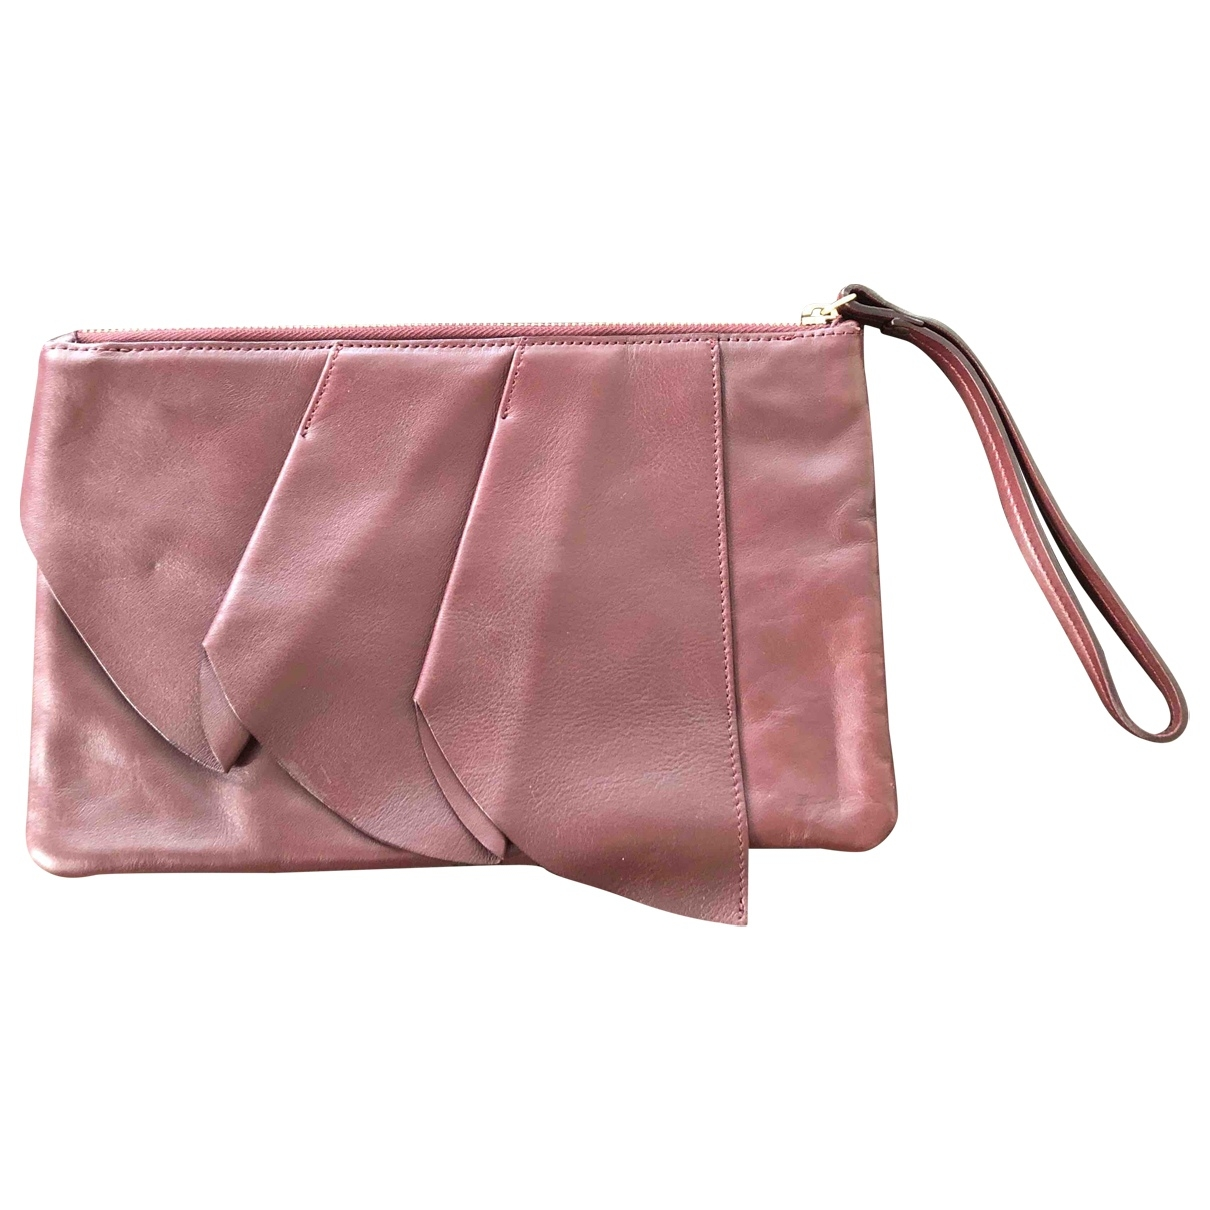 & Stories \N Burgundy Leather Clutch bag for Women \N